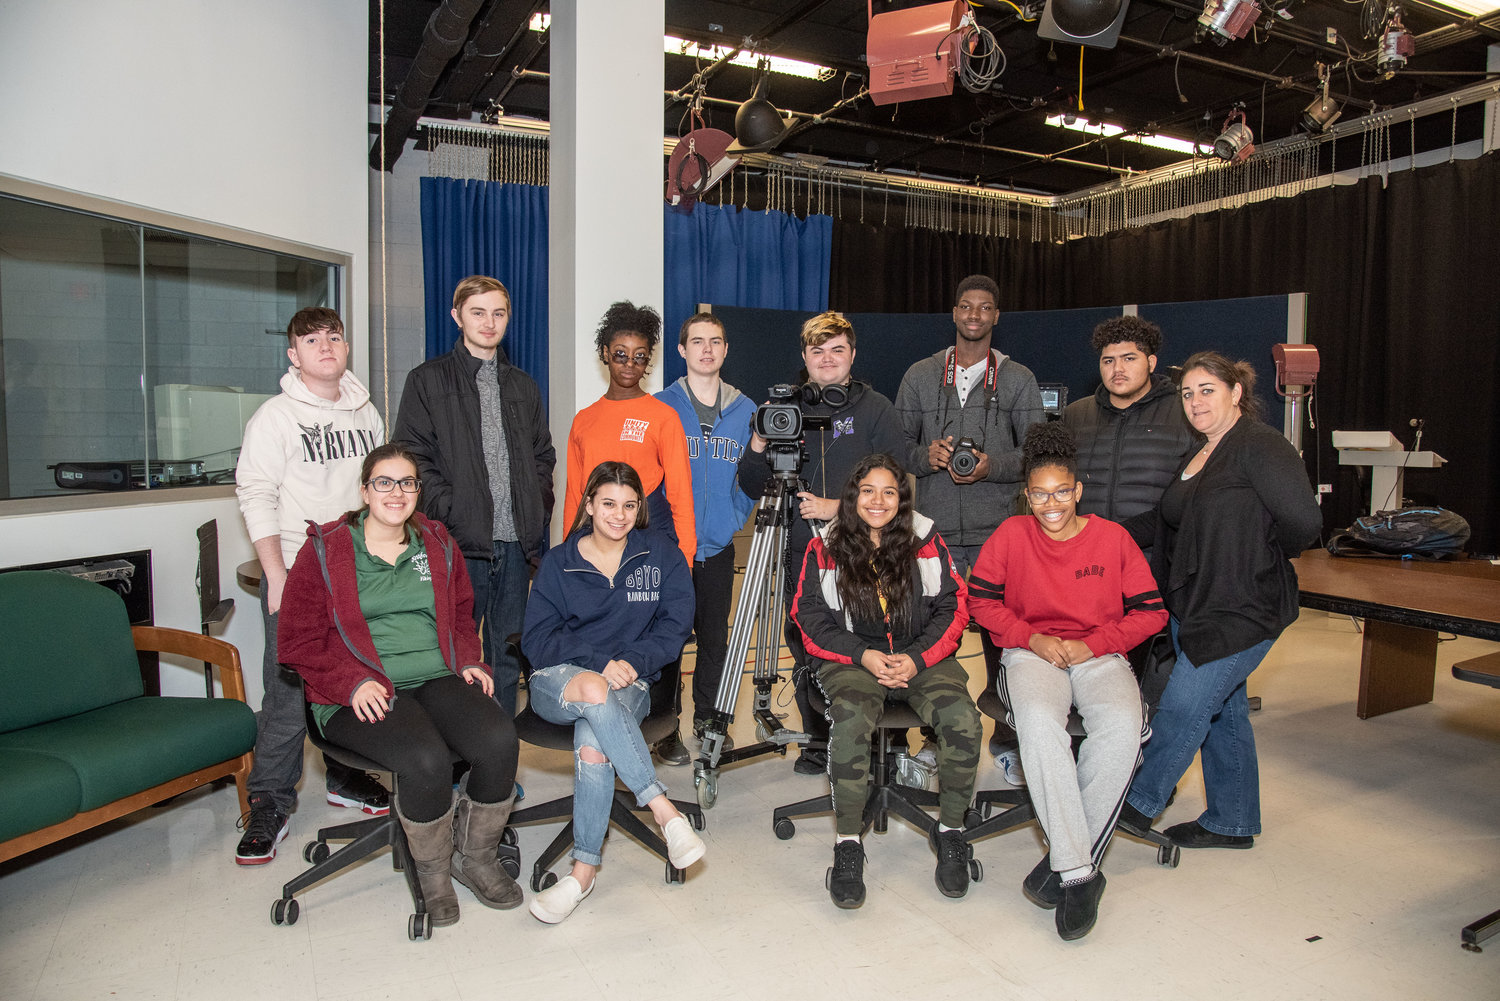 Nassau BOCES Barry Tech's video production students worked on a tribute video for Nassau County Police Commissioner Patrick Ryder.